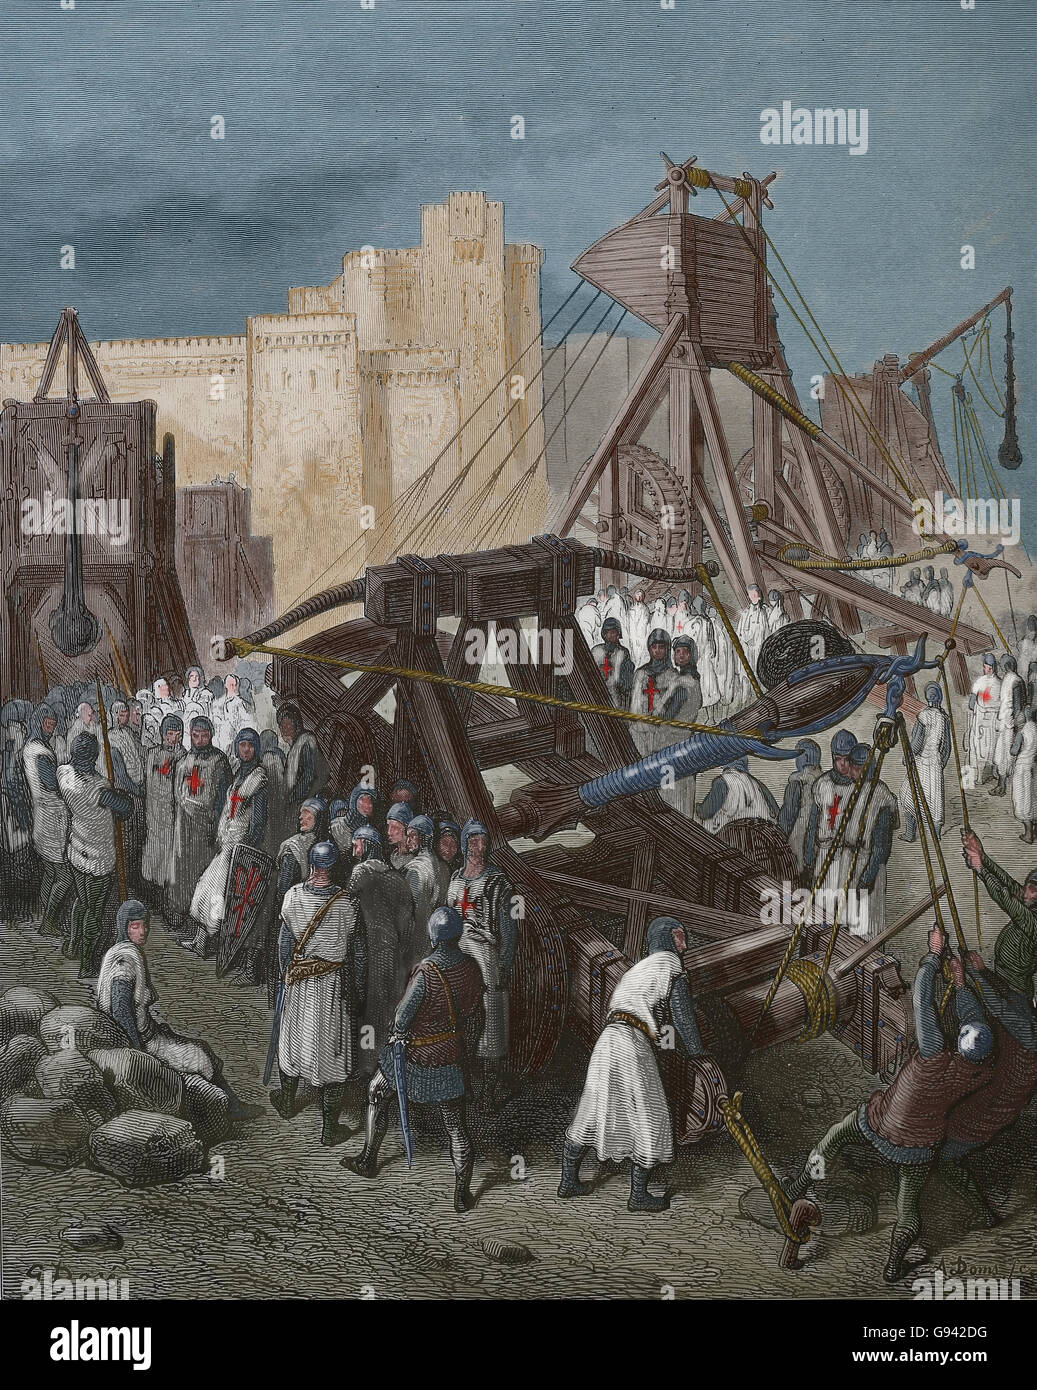 The Crusades of Gustave Dore.1st Crusade (1096-1099). Siege of Jerusalem. Engraving, 19th century. Later colouration. - Stock Image